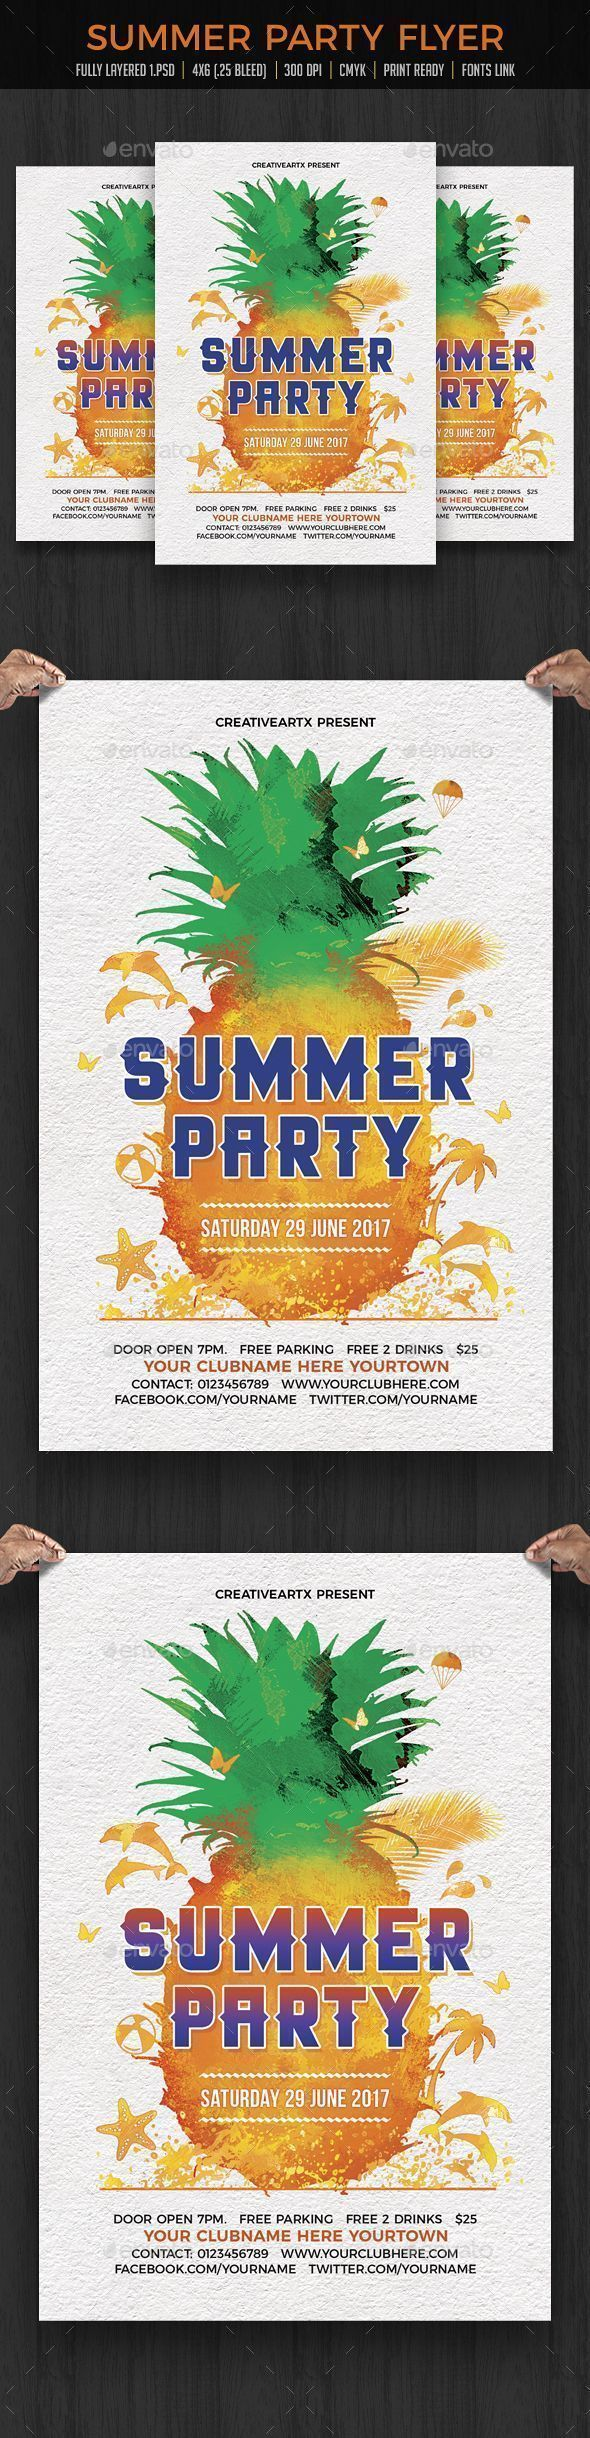 Summer Party Flyer von creativeartx Summer Party Flyer Spring Break Flyer Vorlage ...